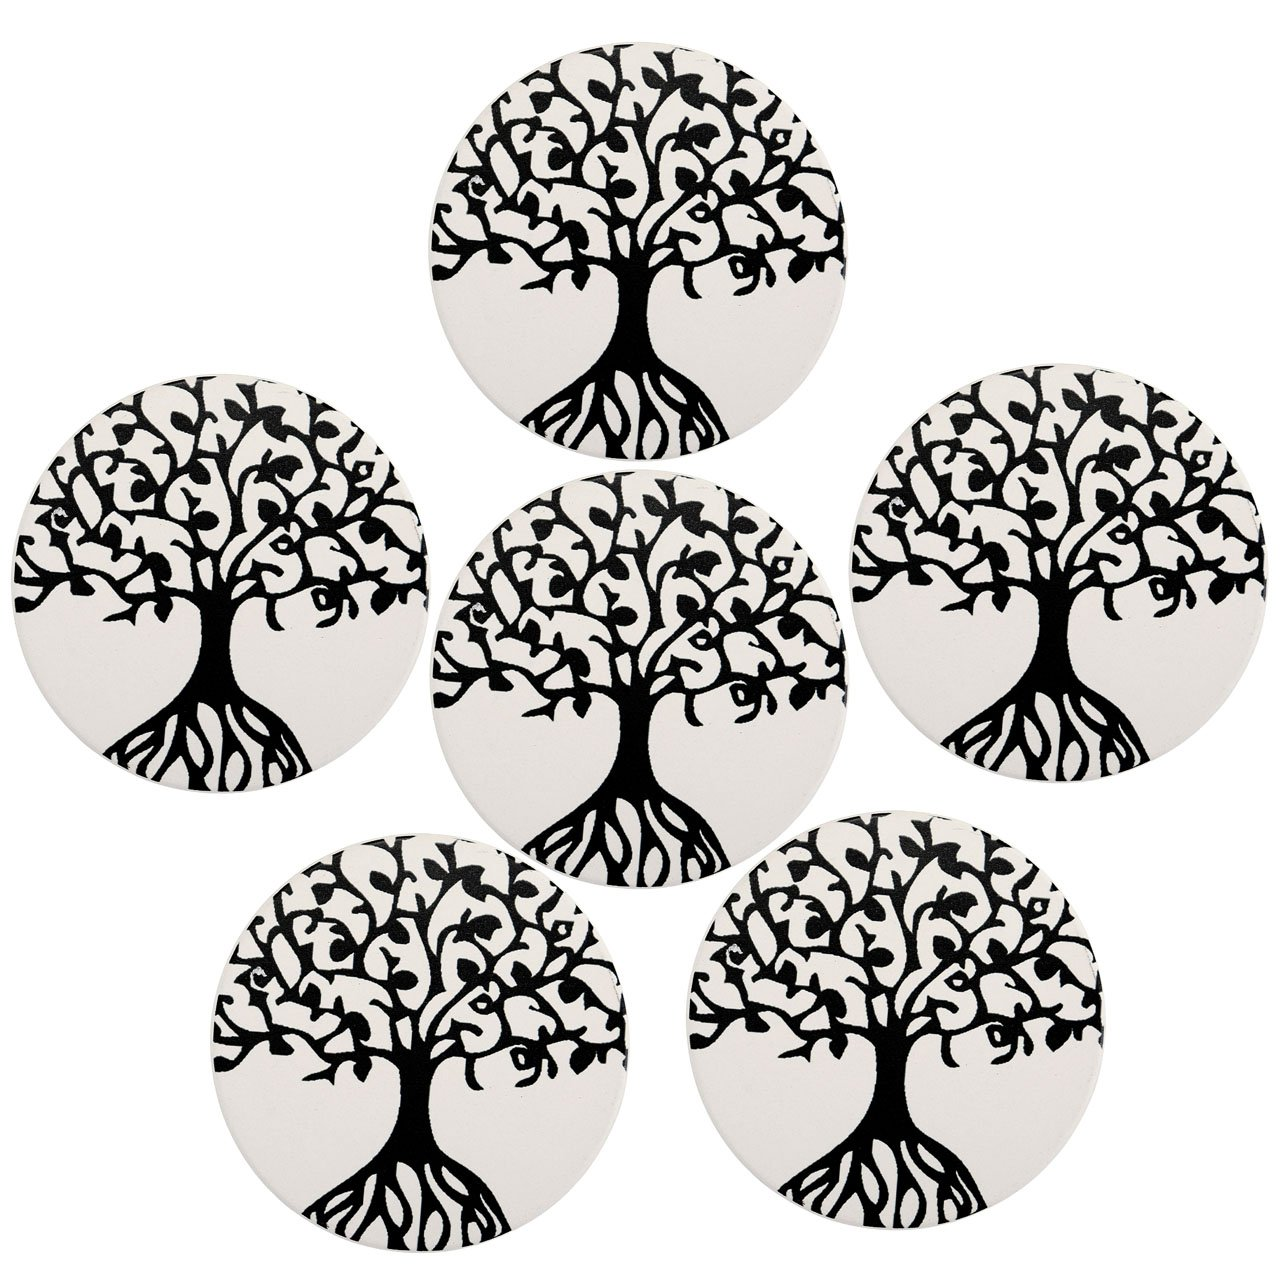 Set of 6 Ceramic Coasters, WarmHut Absorbent Stone Coaster for Drinks, Desktop Protection Prevent Drink Spills Place Mats, Non-Skid Special Decoration Coasters(Round, Tree of Life)